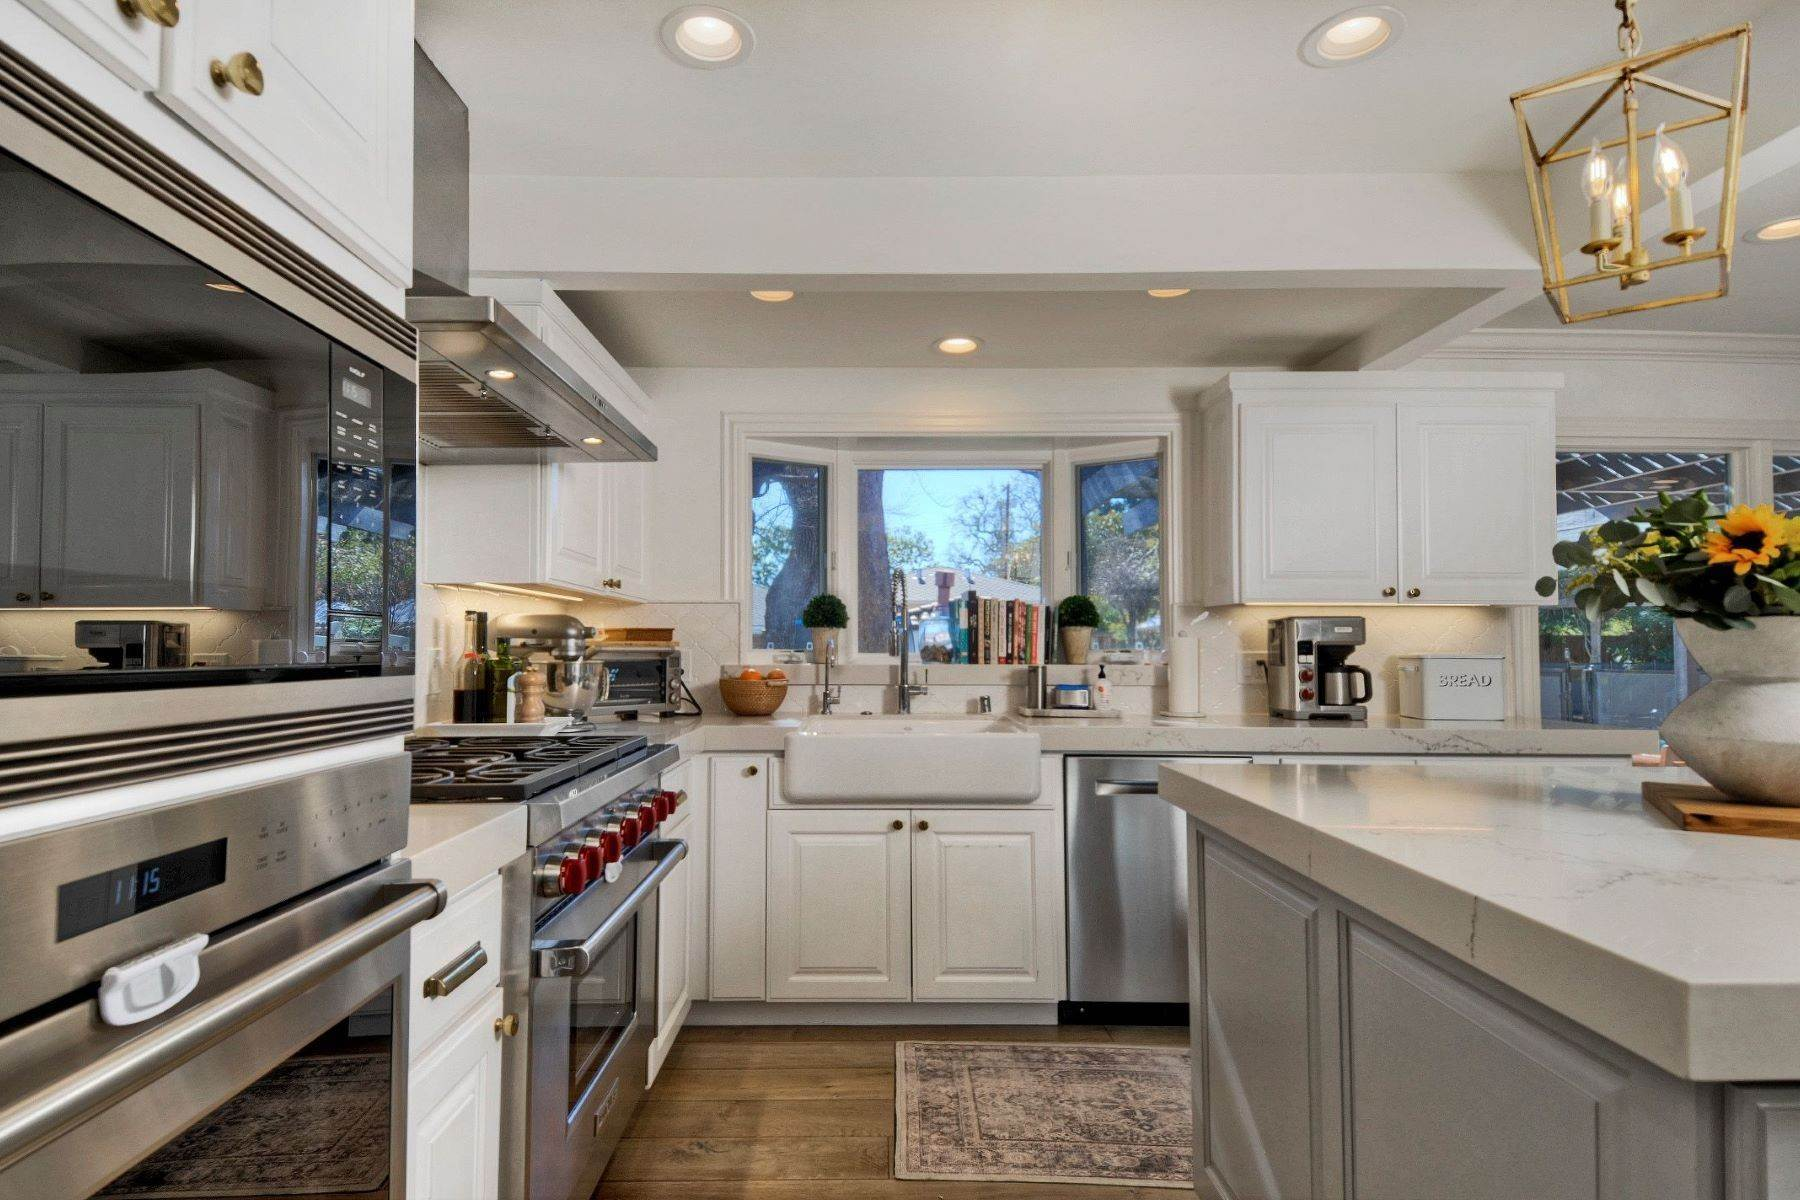 14. Single Family Homes for Sale at Spectacular Ranch Style Home in Prestigious Redwood City Neighborhood 861 Edgewood Road Redwood City, California 94062 United States